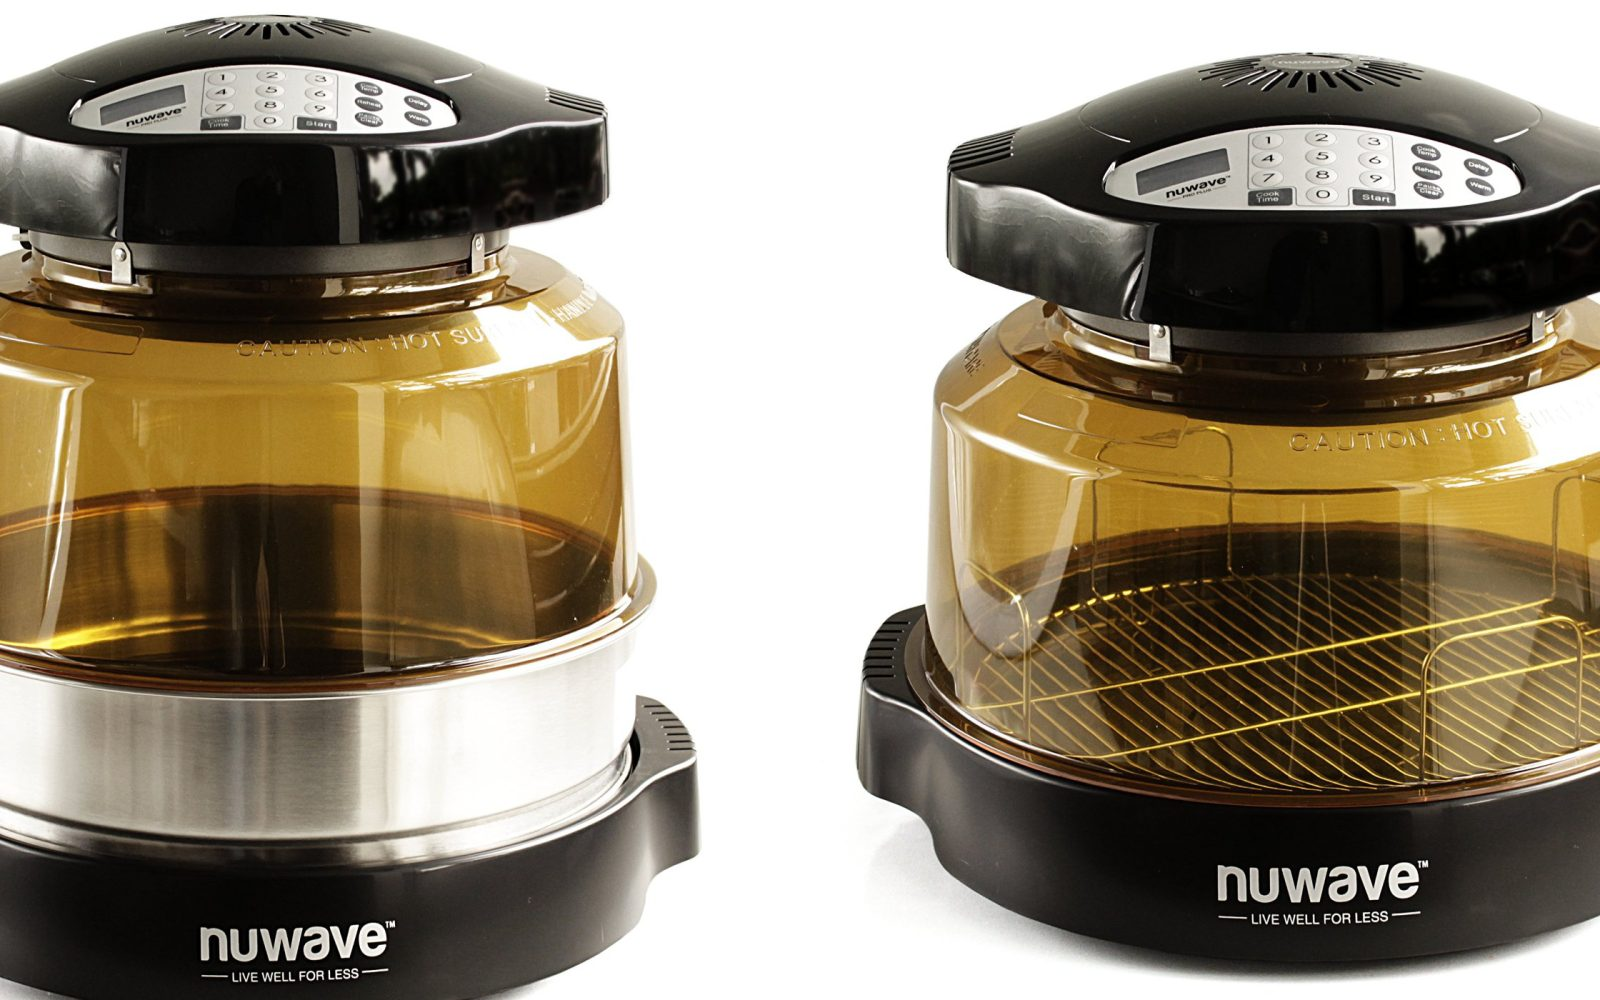 9to5toys page 349 of 1000 new gear reviews and deals home nuwaves best selling convection oven 93 reg 120 instant pot pressure cooker 143 orig 179 more fandeluxe Choice Image